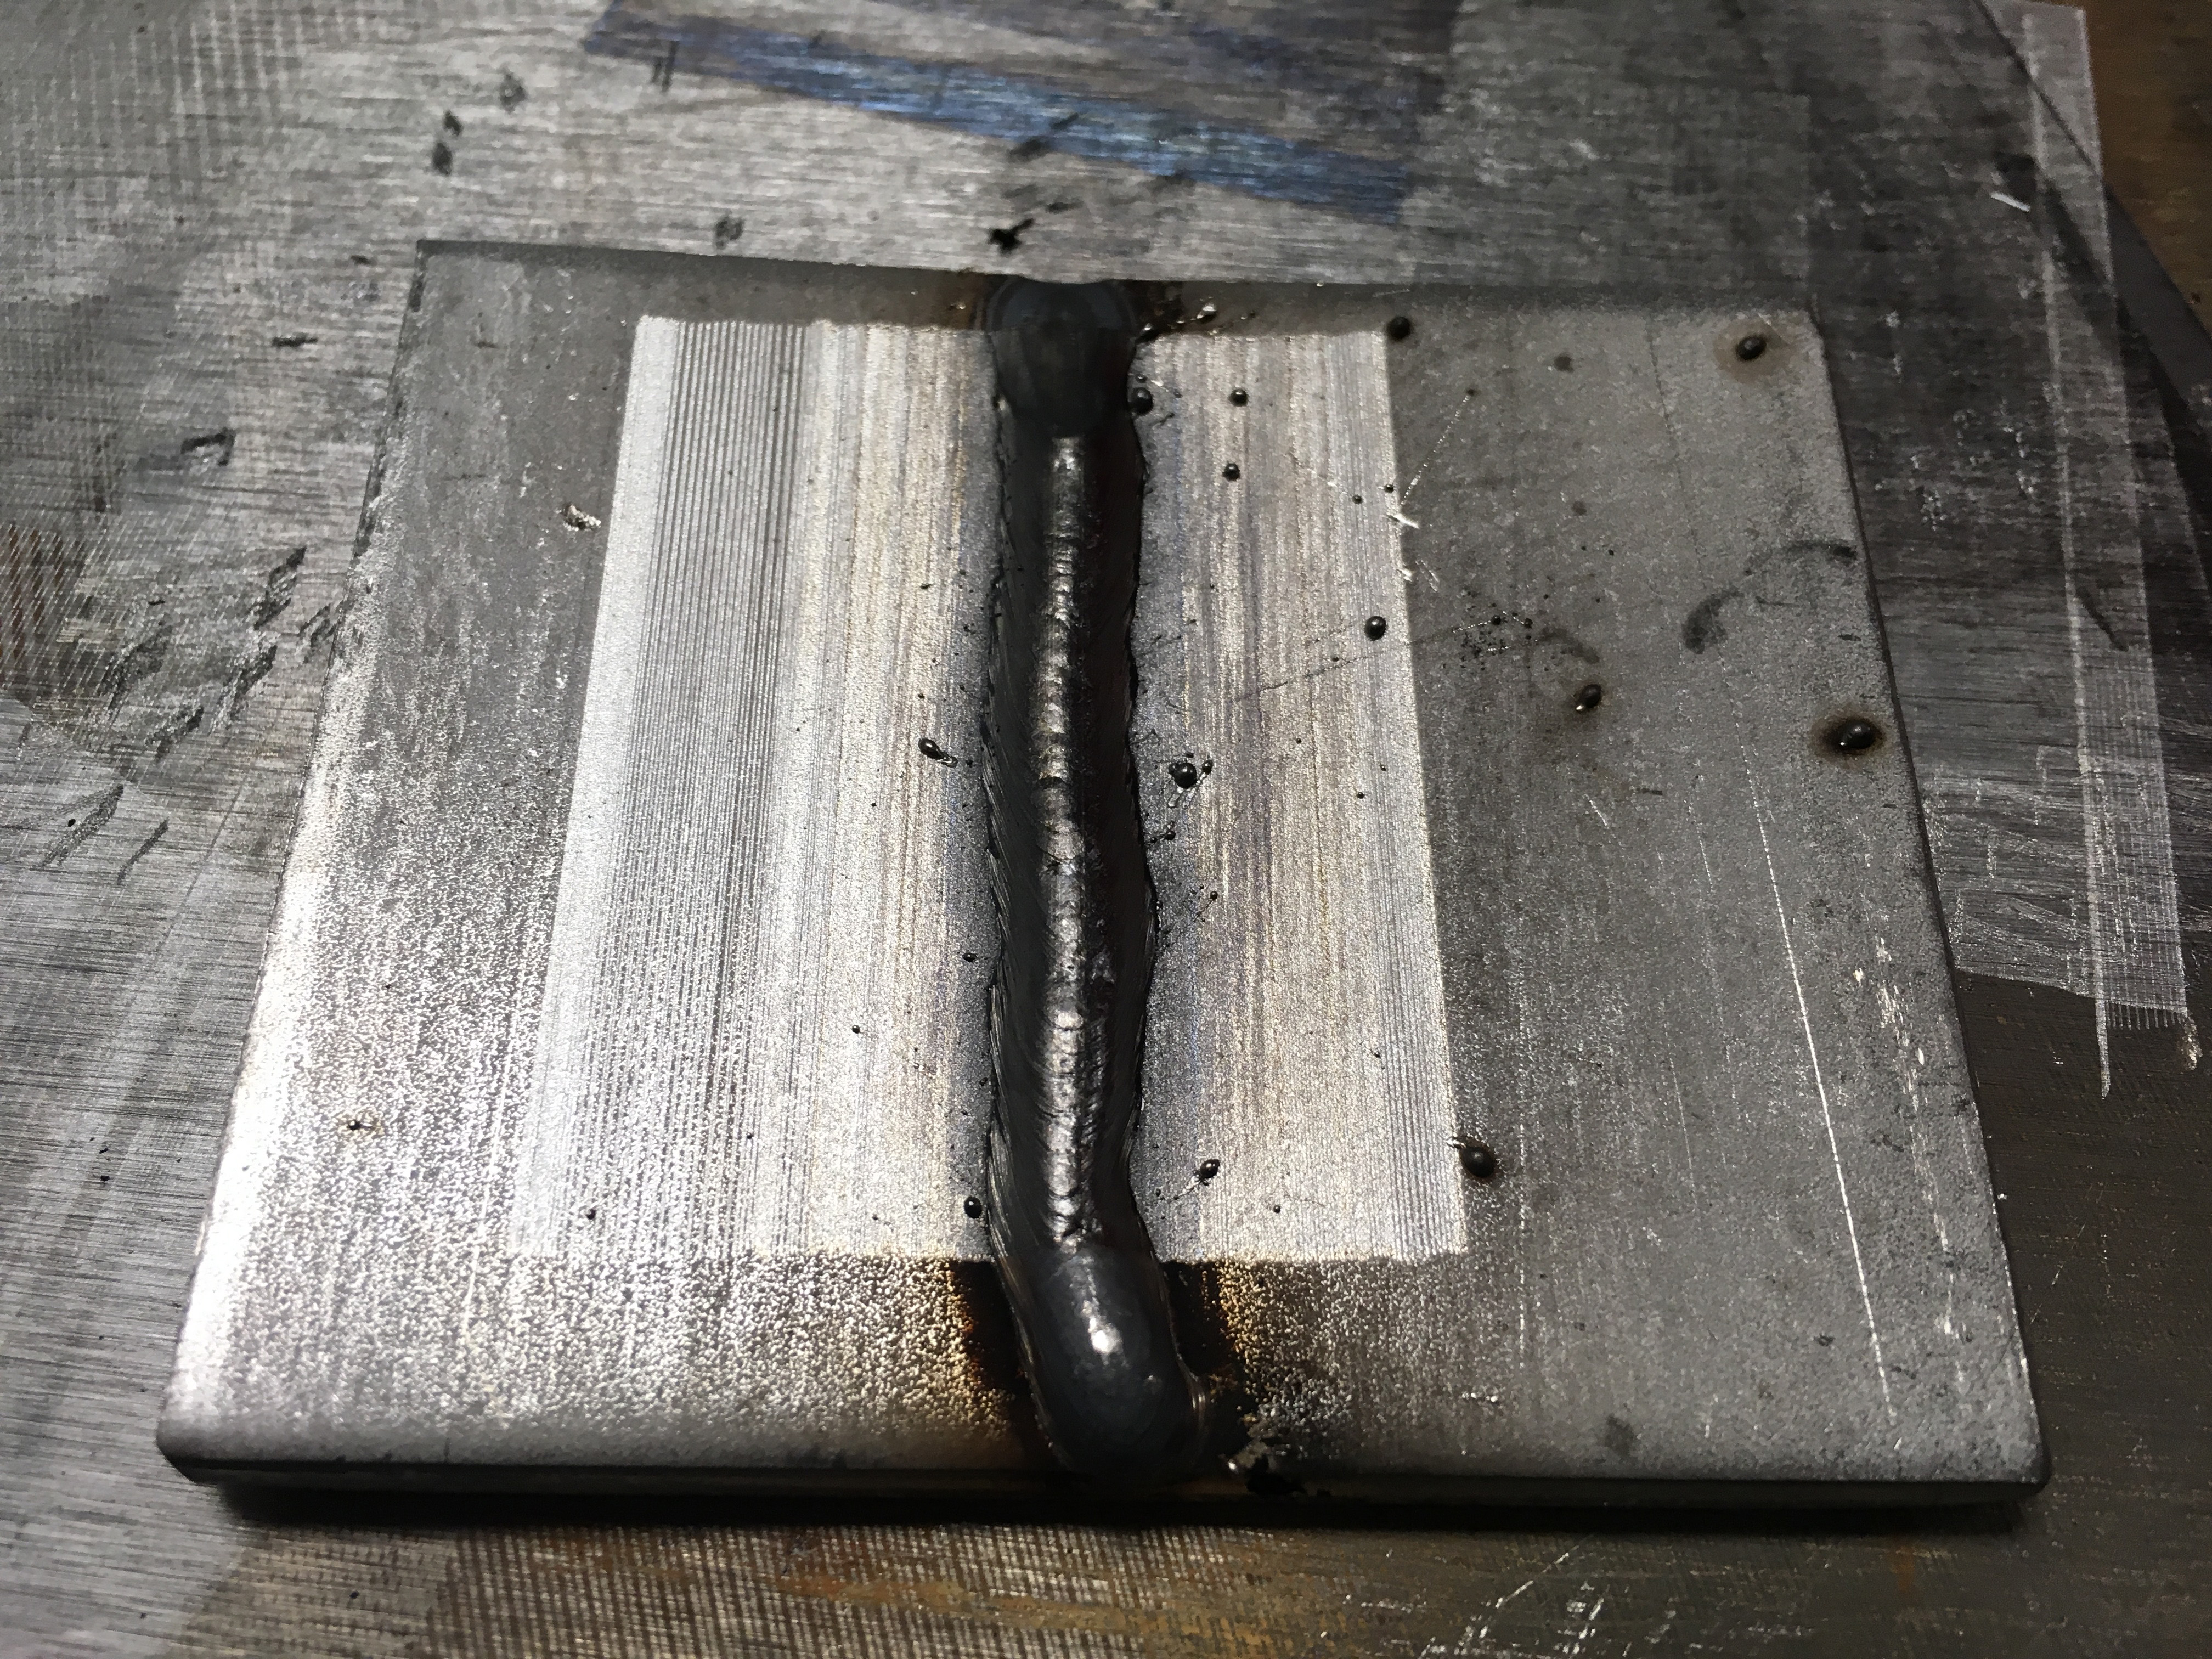 Laser cleaning of weld on stainless steel